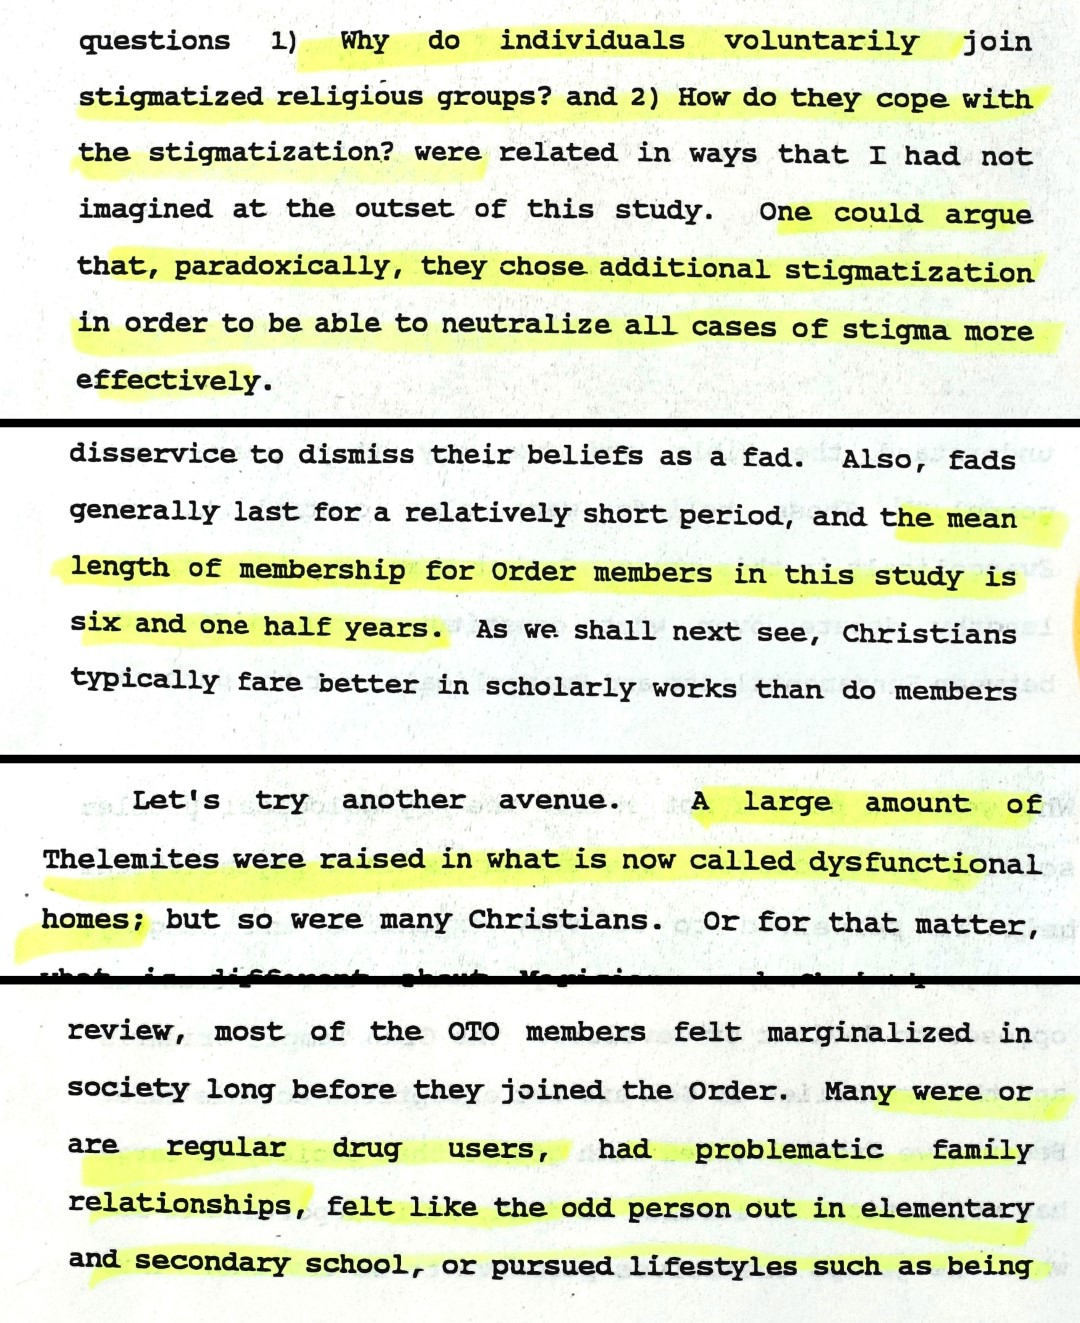 Claudia Kowalchyk, A study of two 'deviant' religious groups. The Assemblies of God and the Ordo Templi Orientis, NY 1994, pages 55, 93, 103, 208